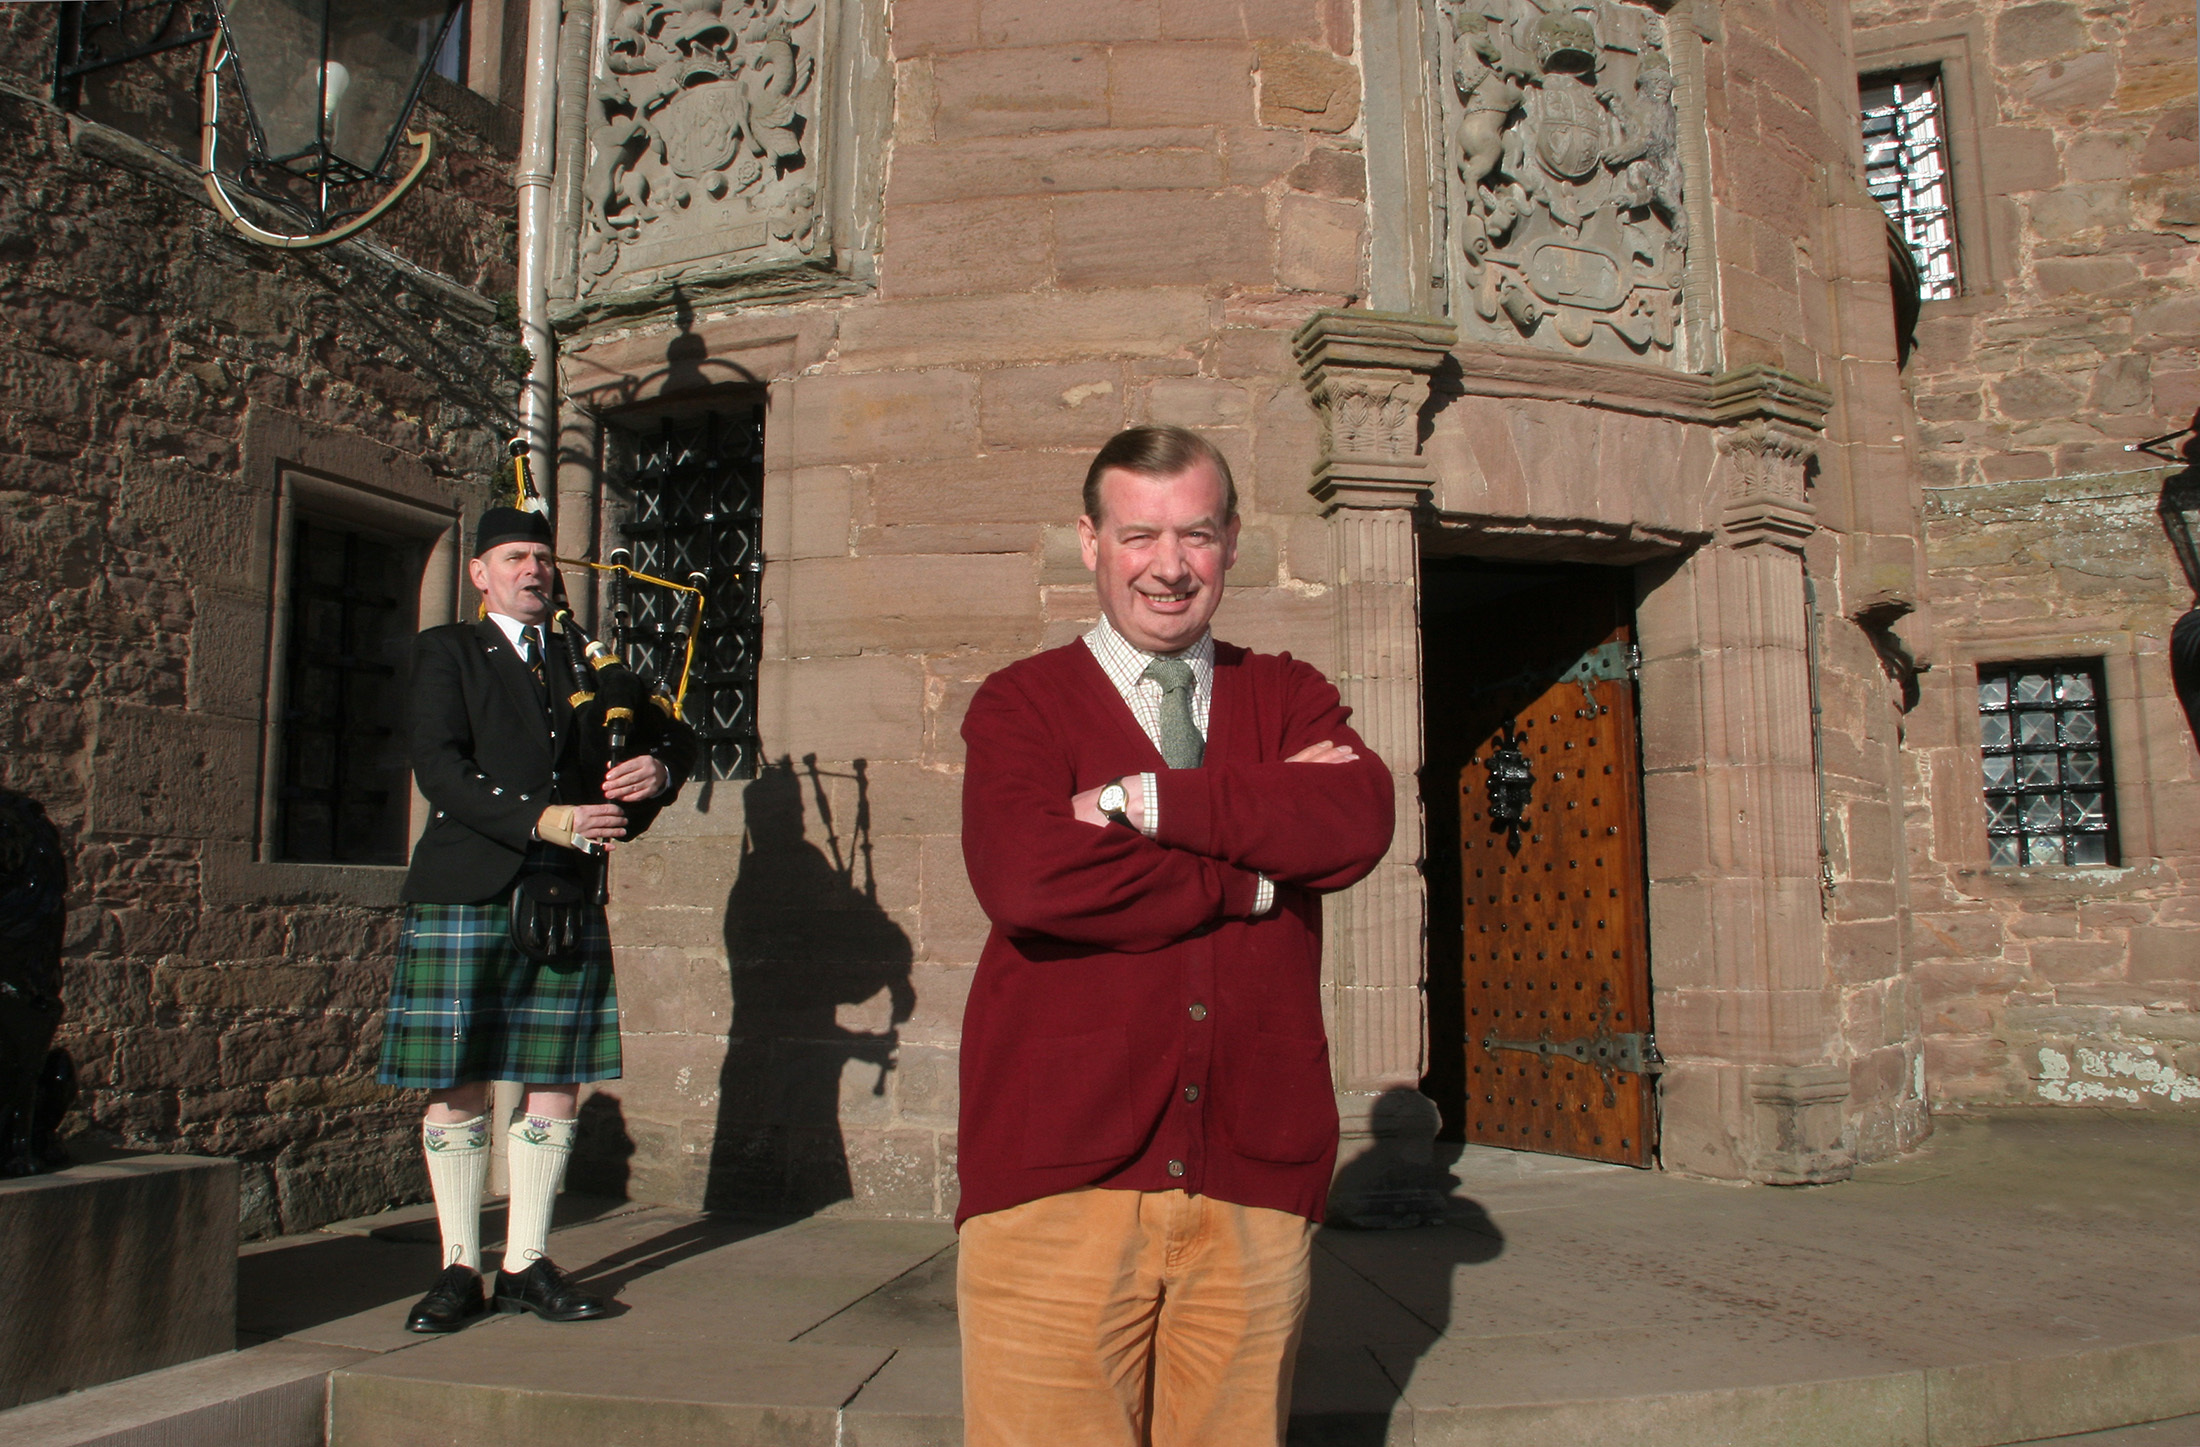 The 18th Earl of Strathmore and Kinghorne, Michael Fergus Bowes-Lyon with Forfar piper David Myles.